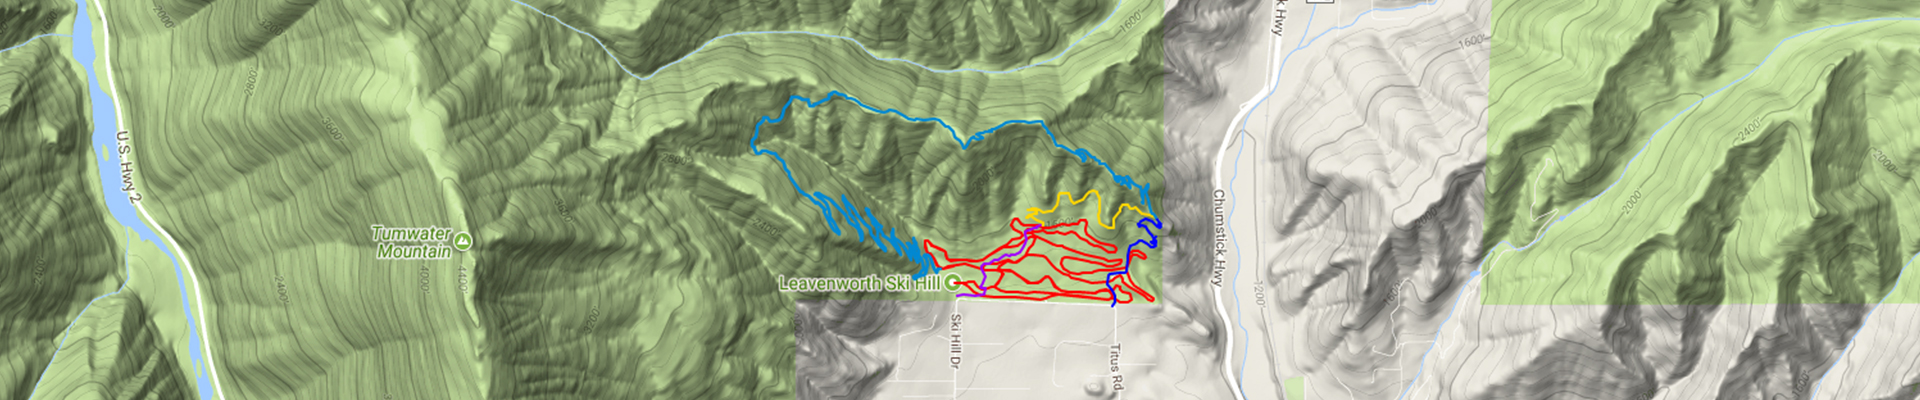 leavenworth ski hill map